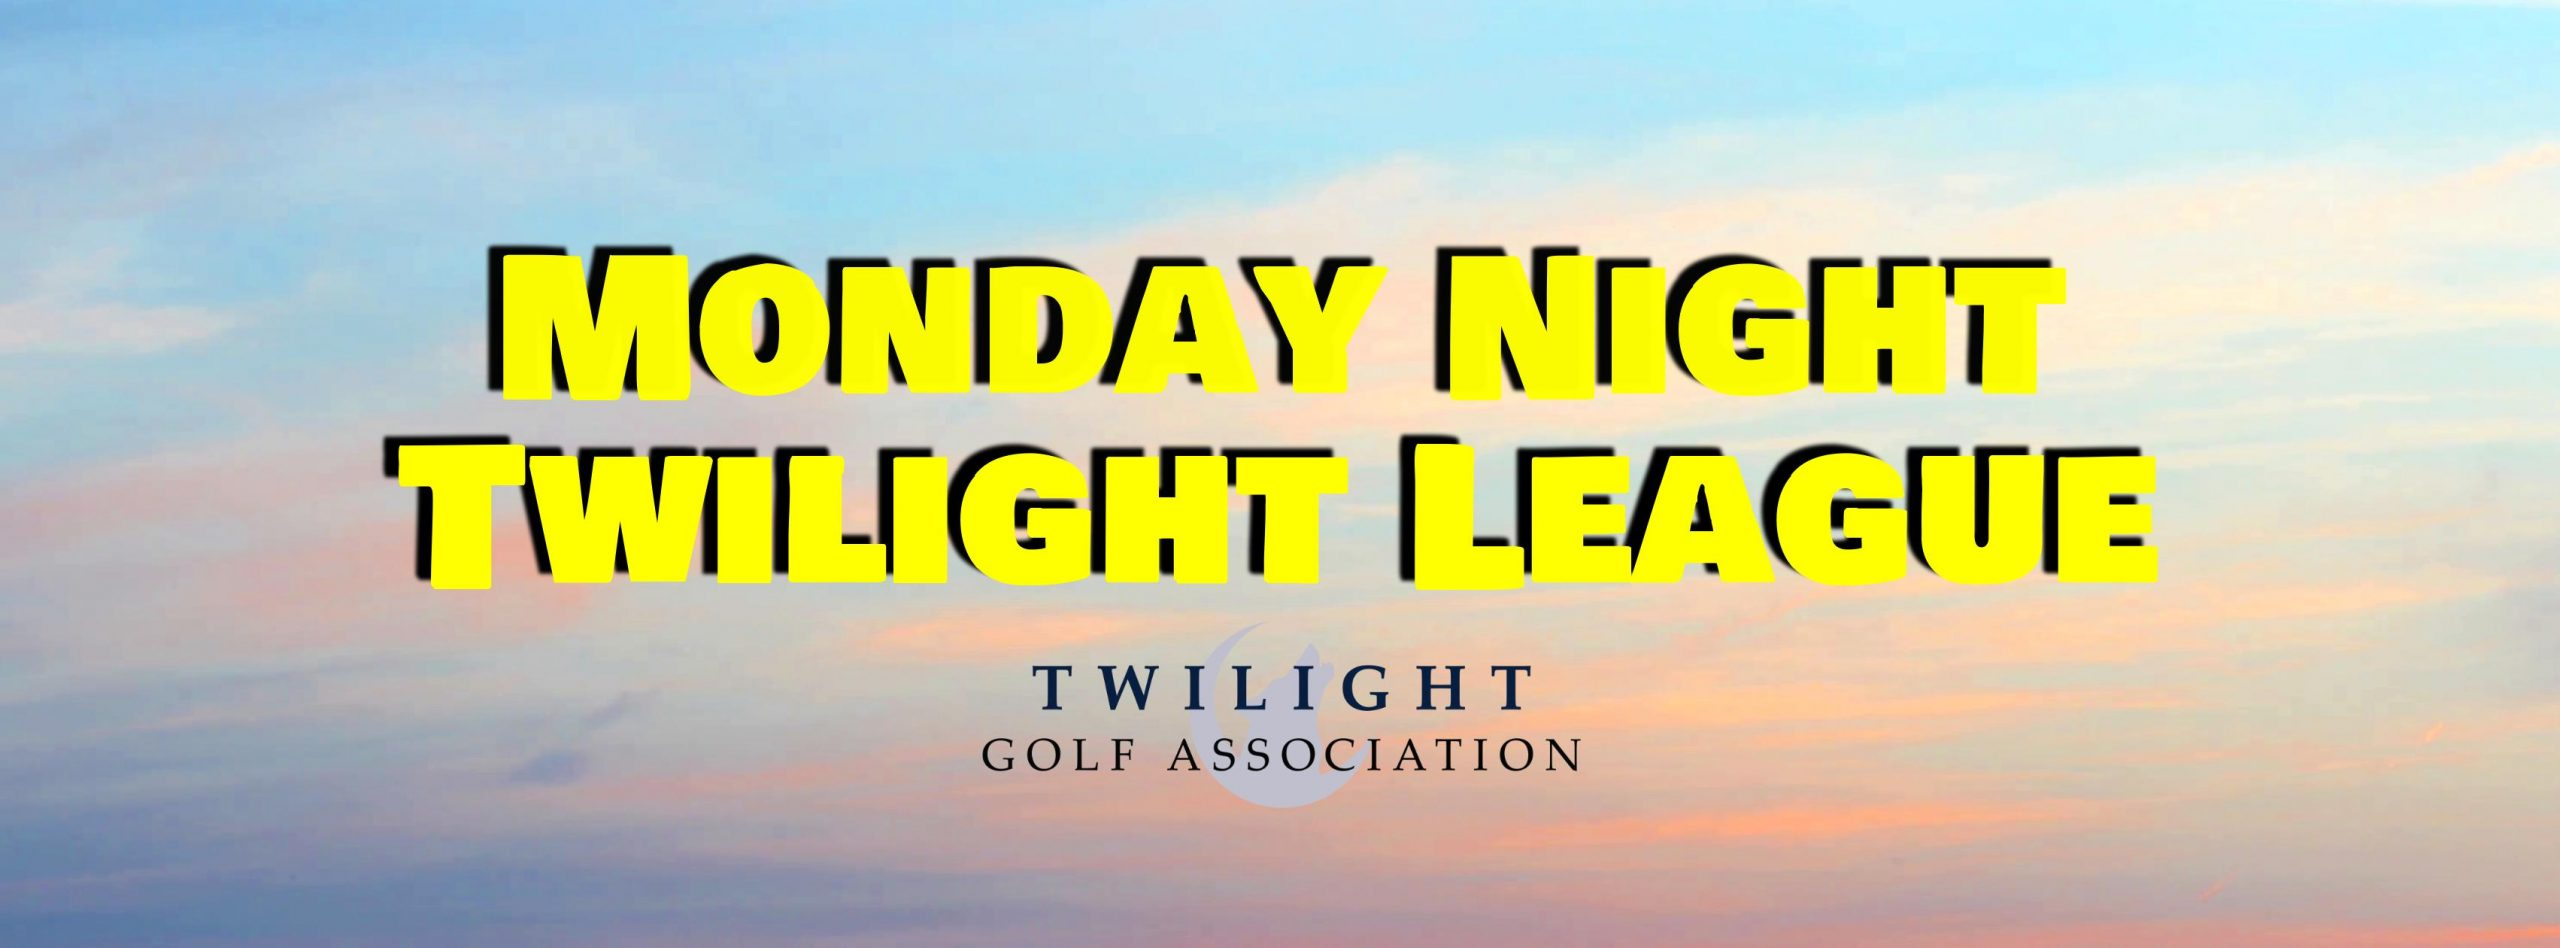 Monday Twilight League at Whitmore Lakes Golf Links